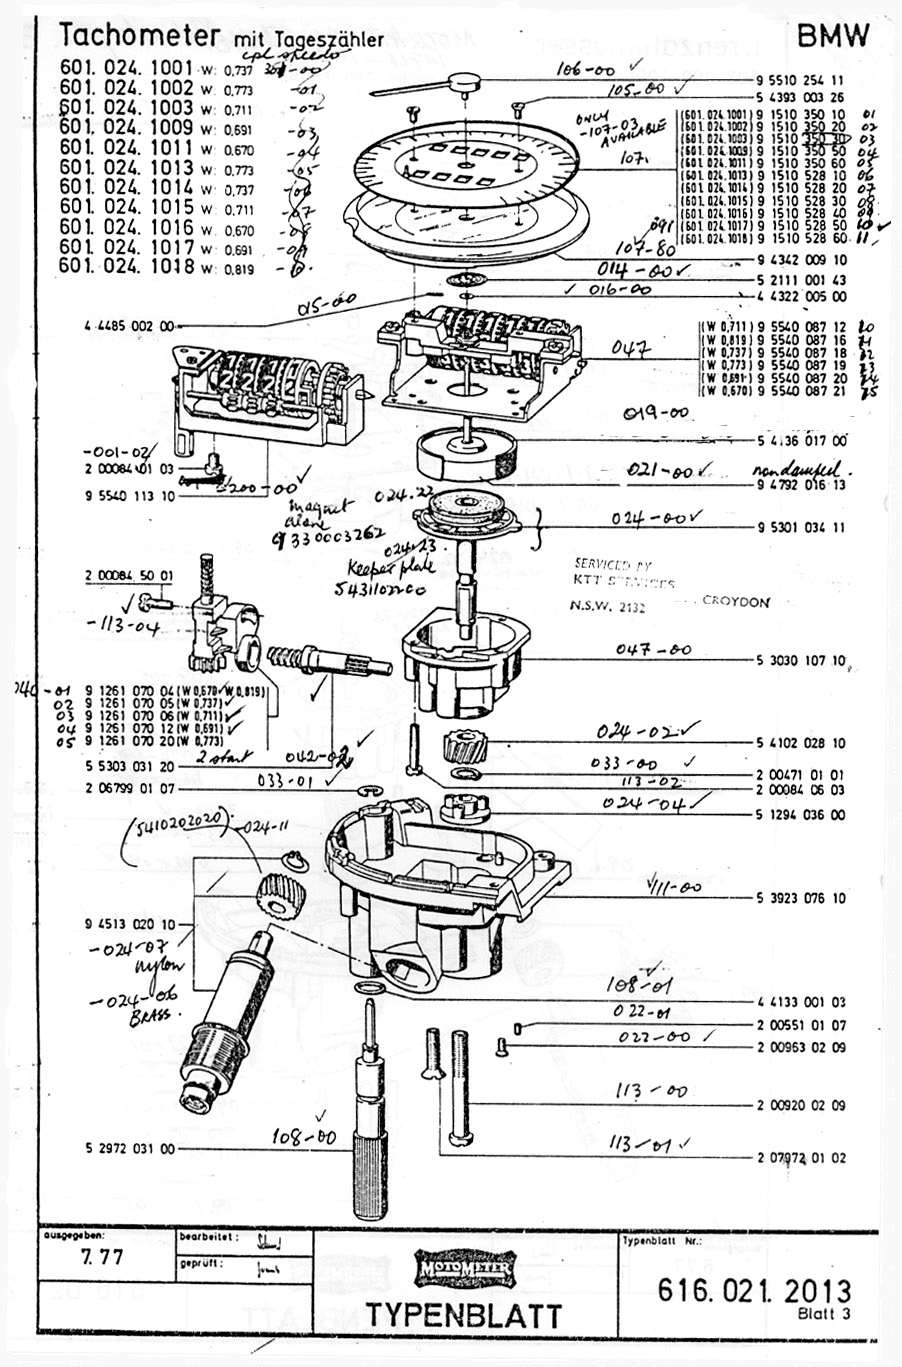 f250 stereo wiring diagram for 1988 [ 902 x 1367 Pixel ]